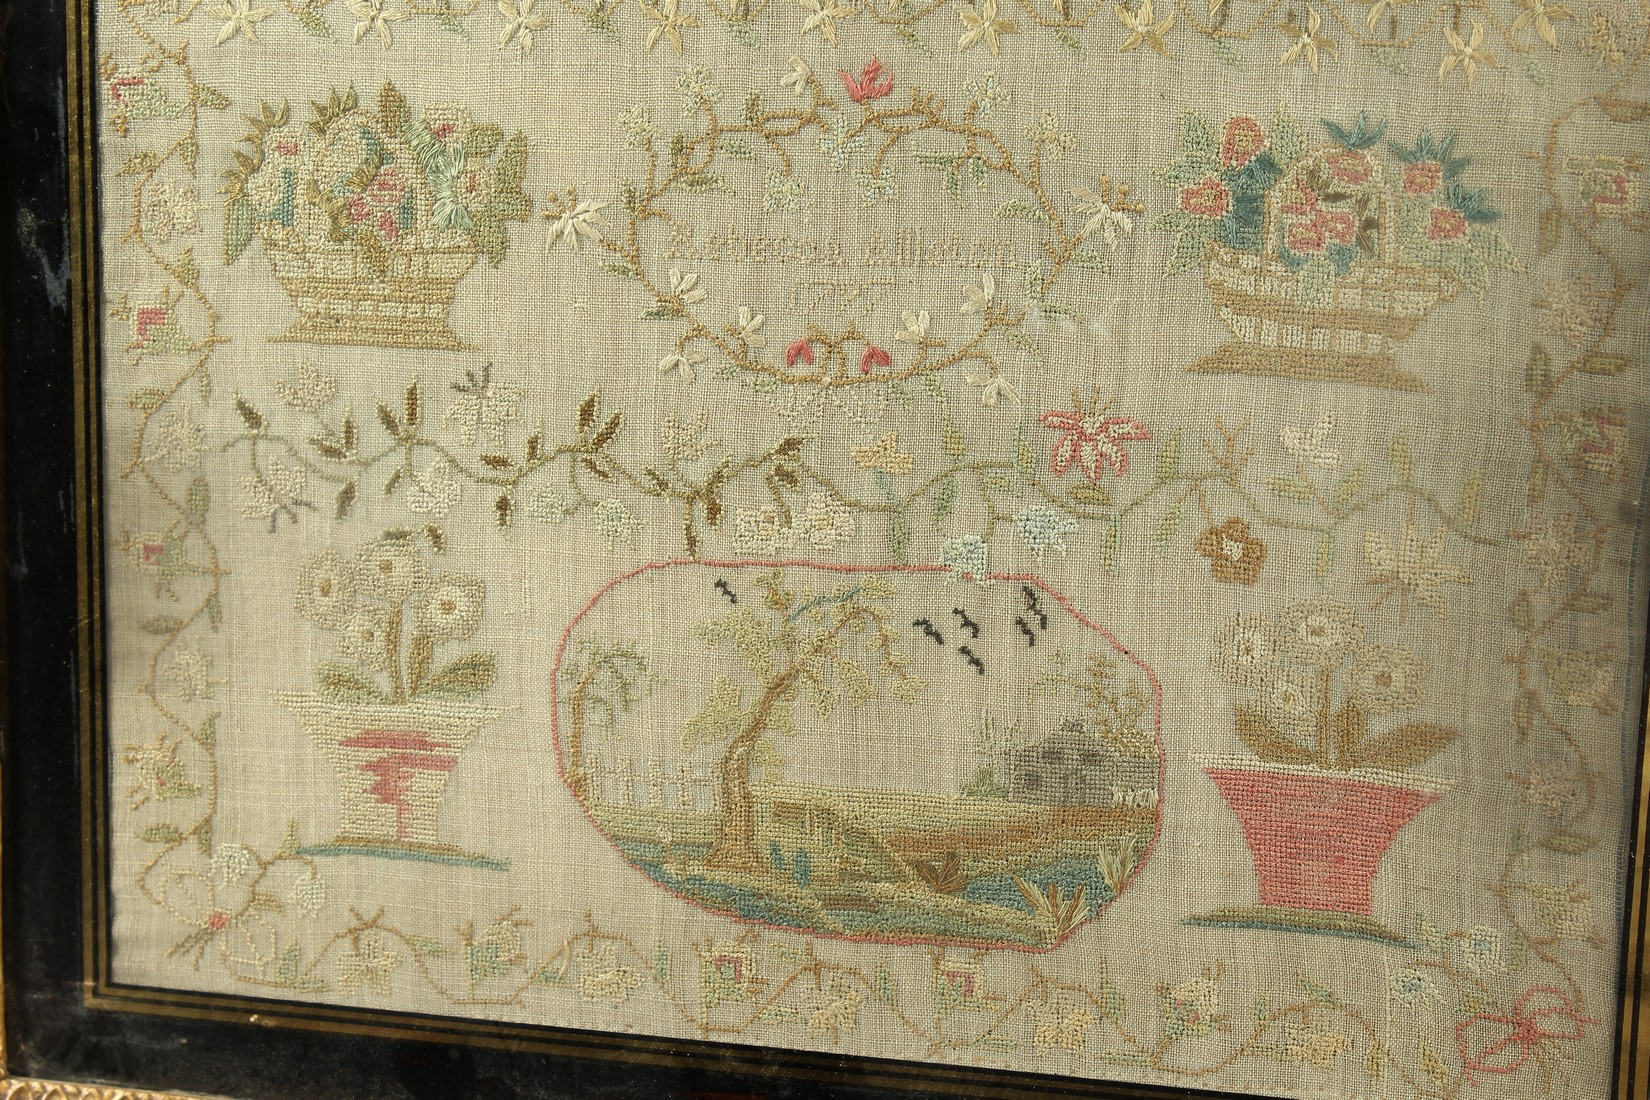 A GEORGE III FRAMED AND GLAZED SAMPLER by Roberta Allerton, 1787, with a poem, birds, flowers etc. - Image 4 of 7